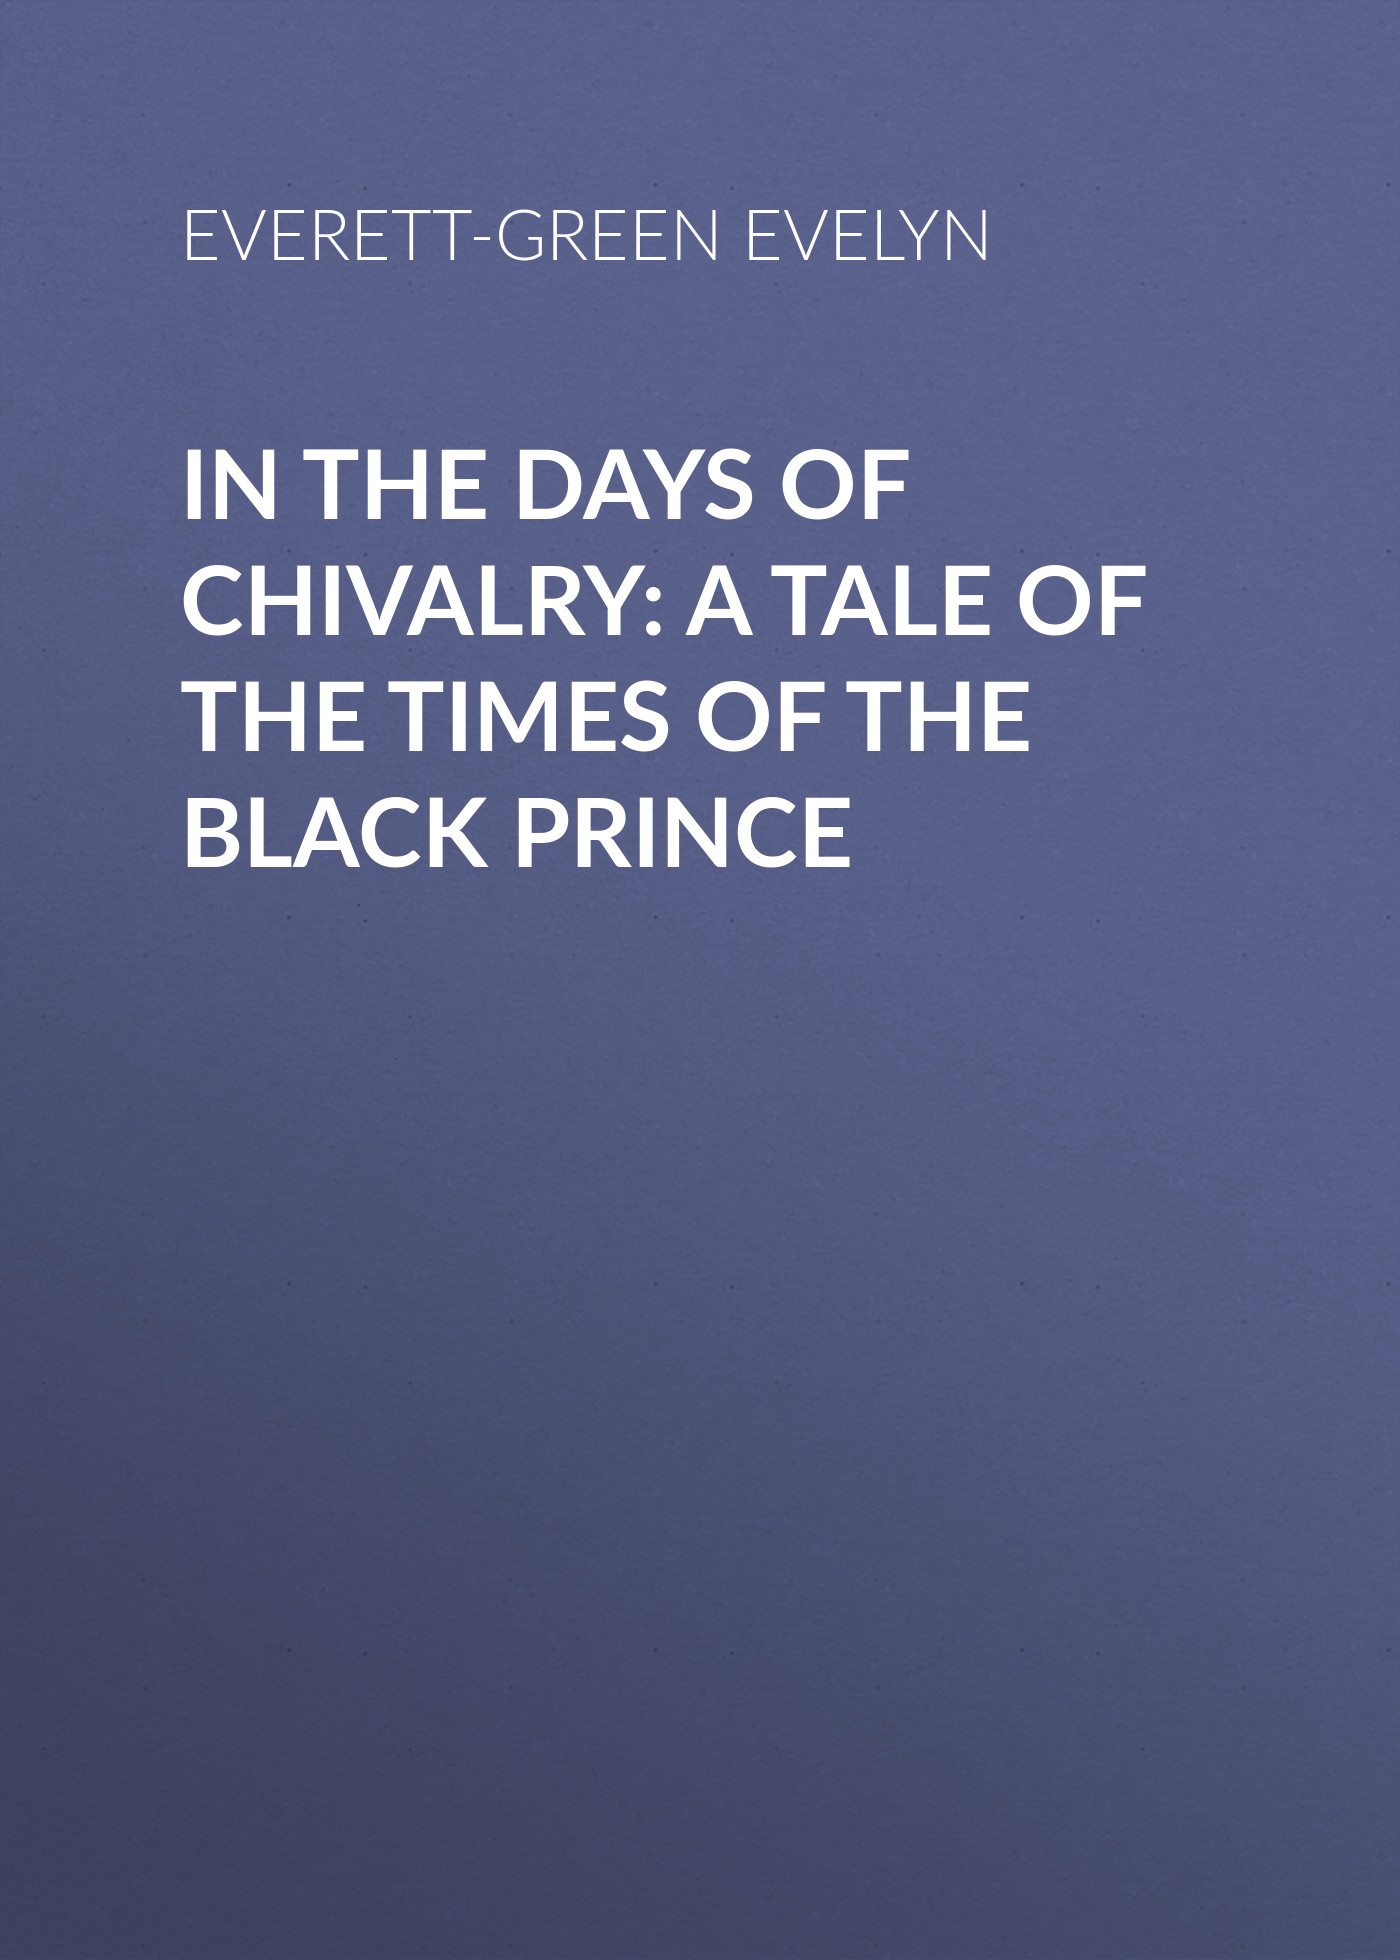 лучшая цена Everett-Green Evelyn In the Days of Chivalry: A Tale of the Times of the Black Prince